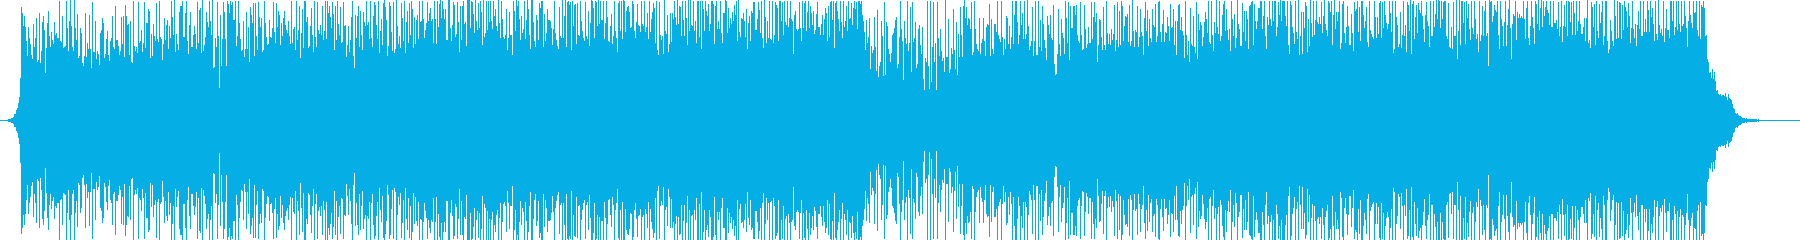 Uplifting bright dance pop music's reproduced waveform